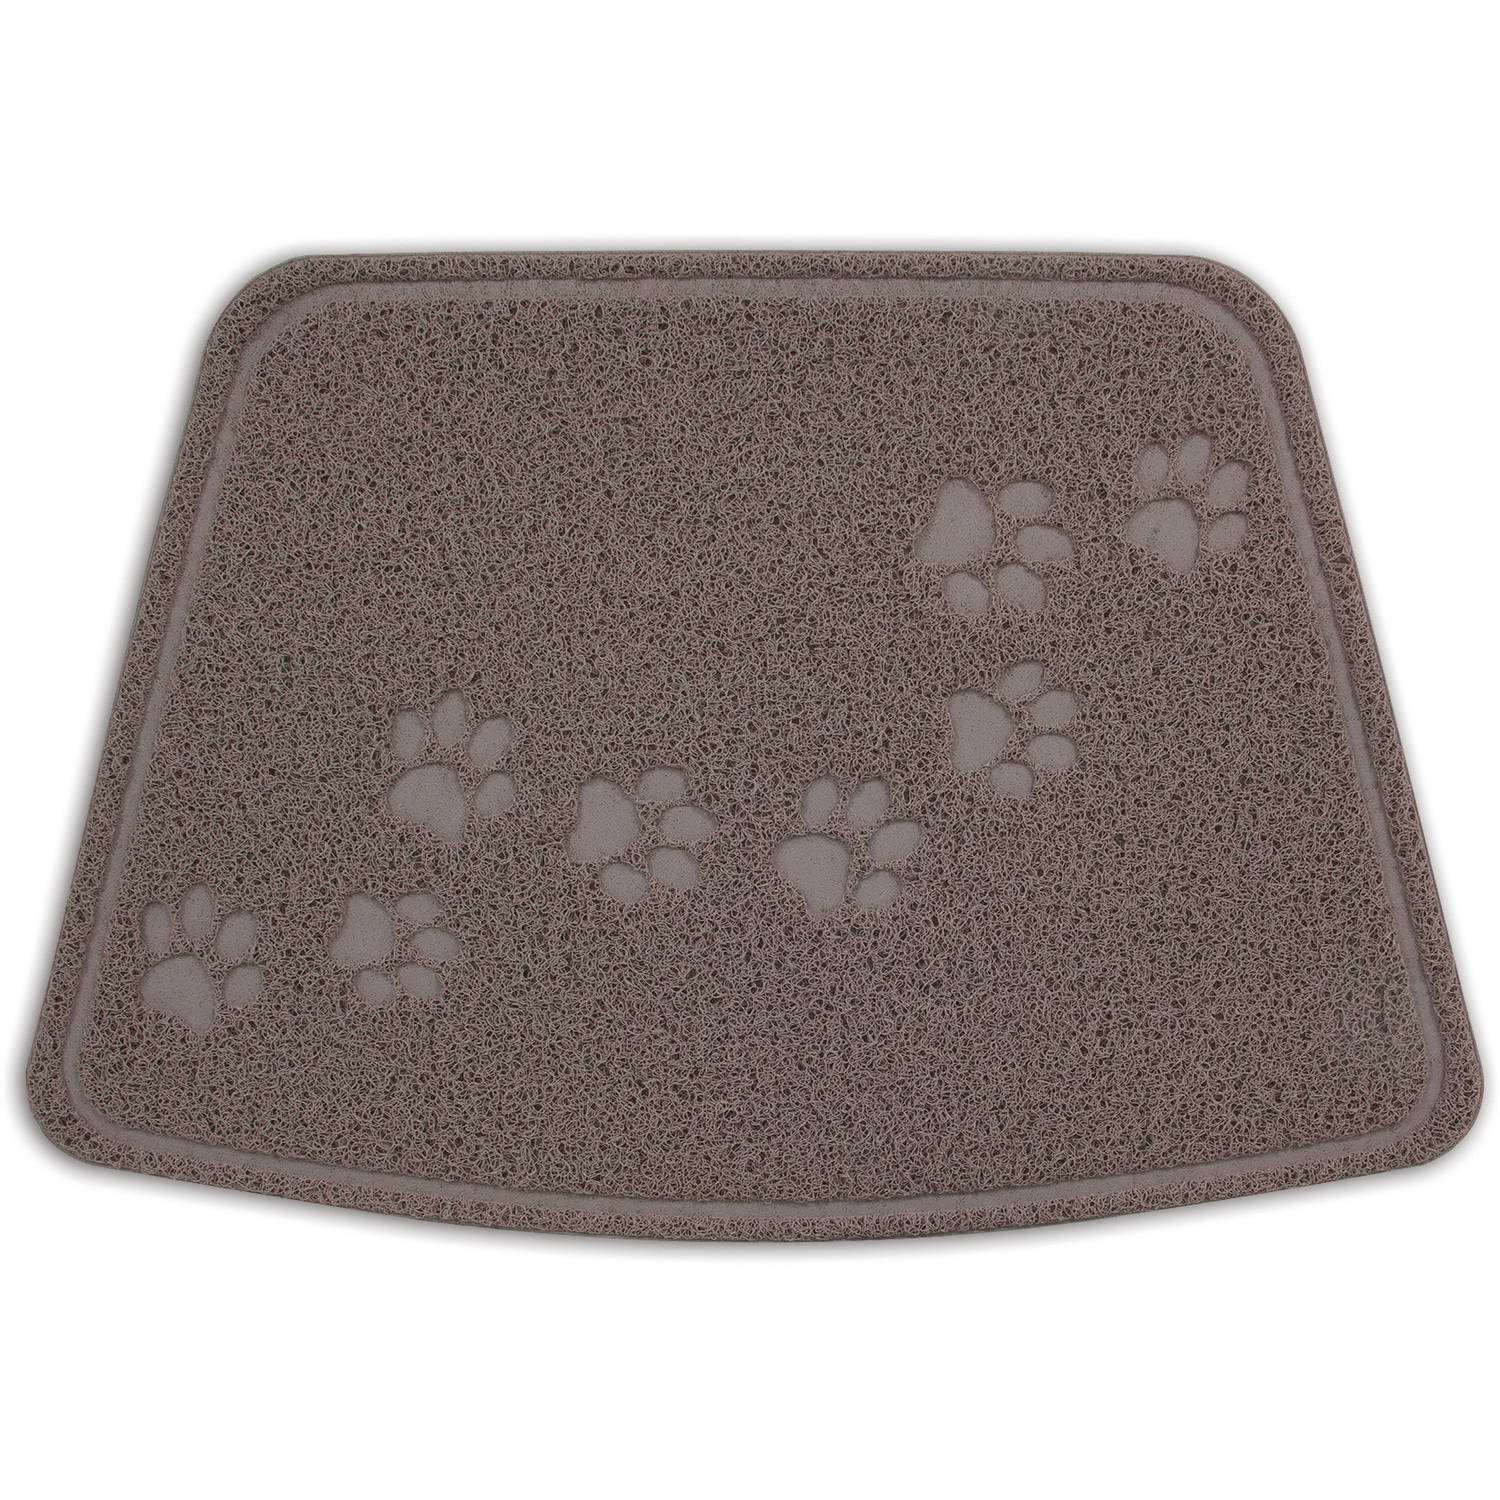 Arm & Hammer, Cat Litter Mat With Paw Design, Pearl Tan